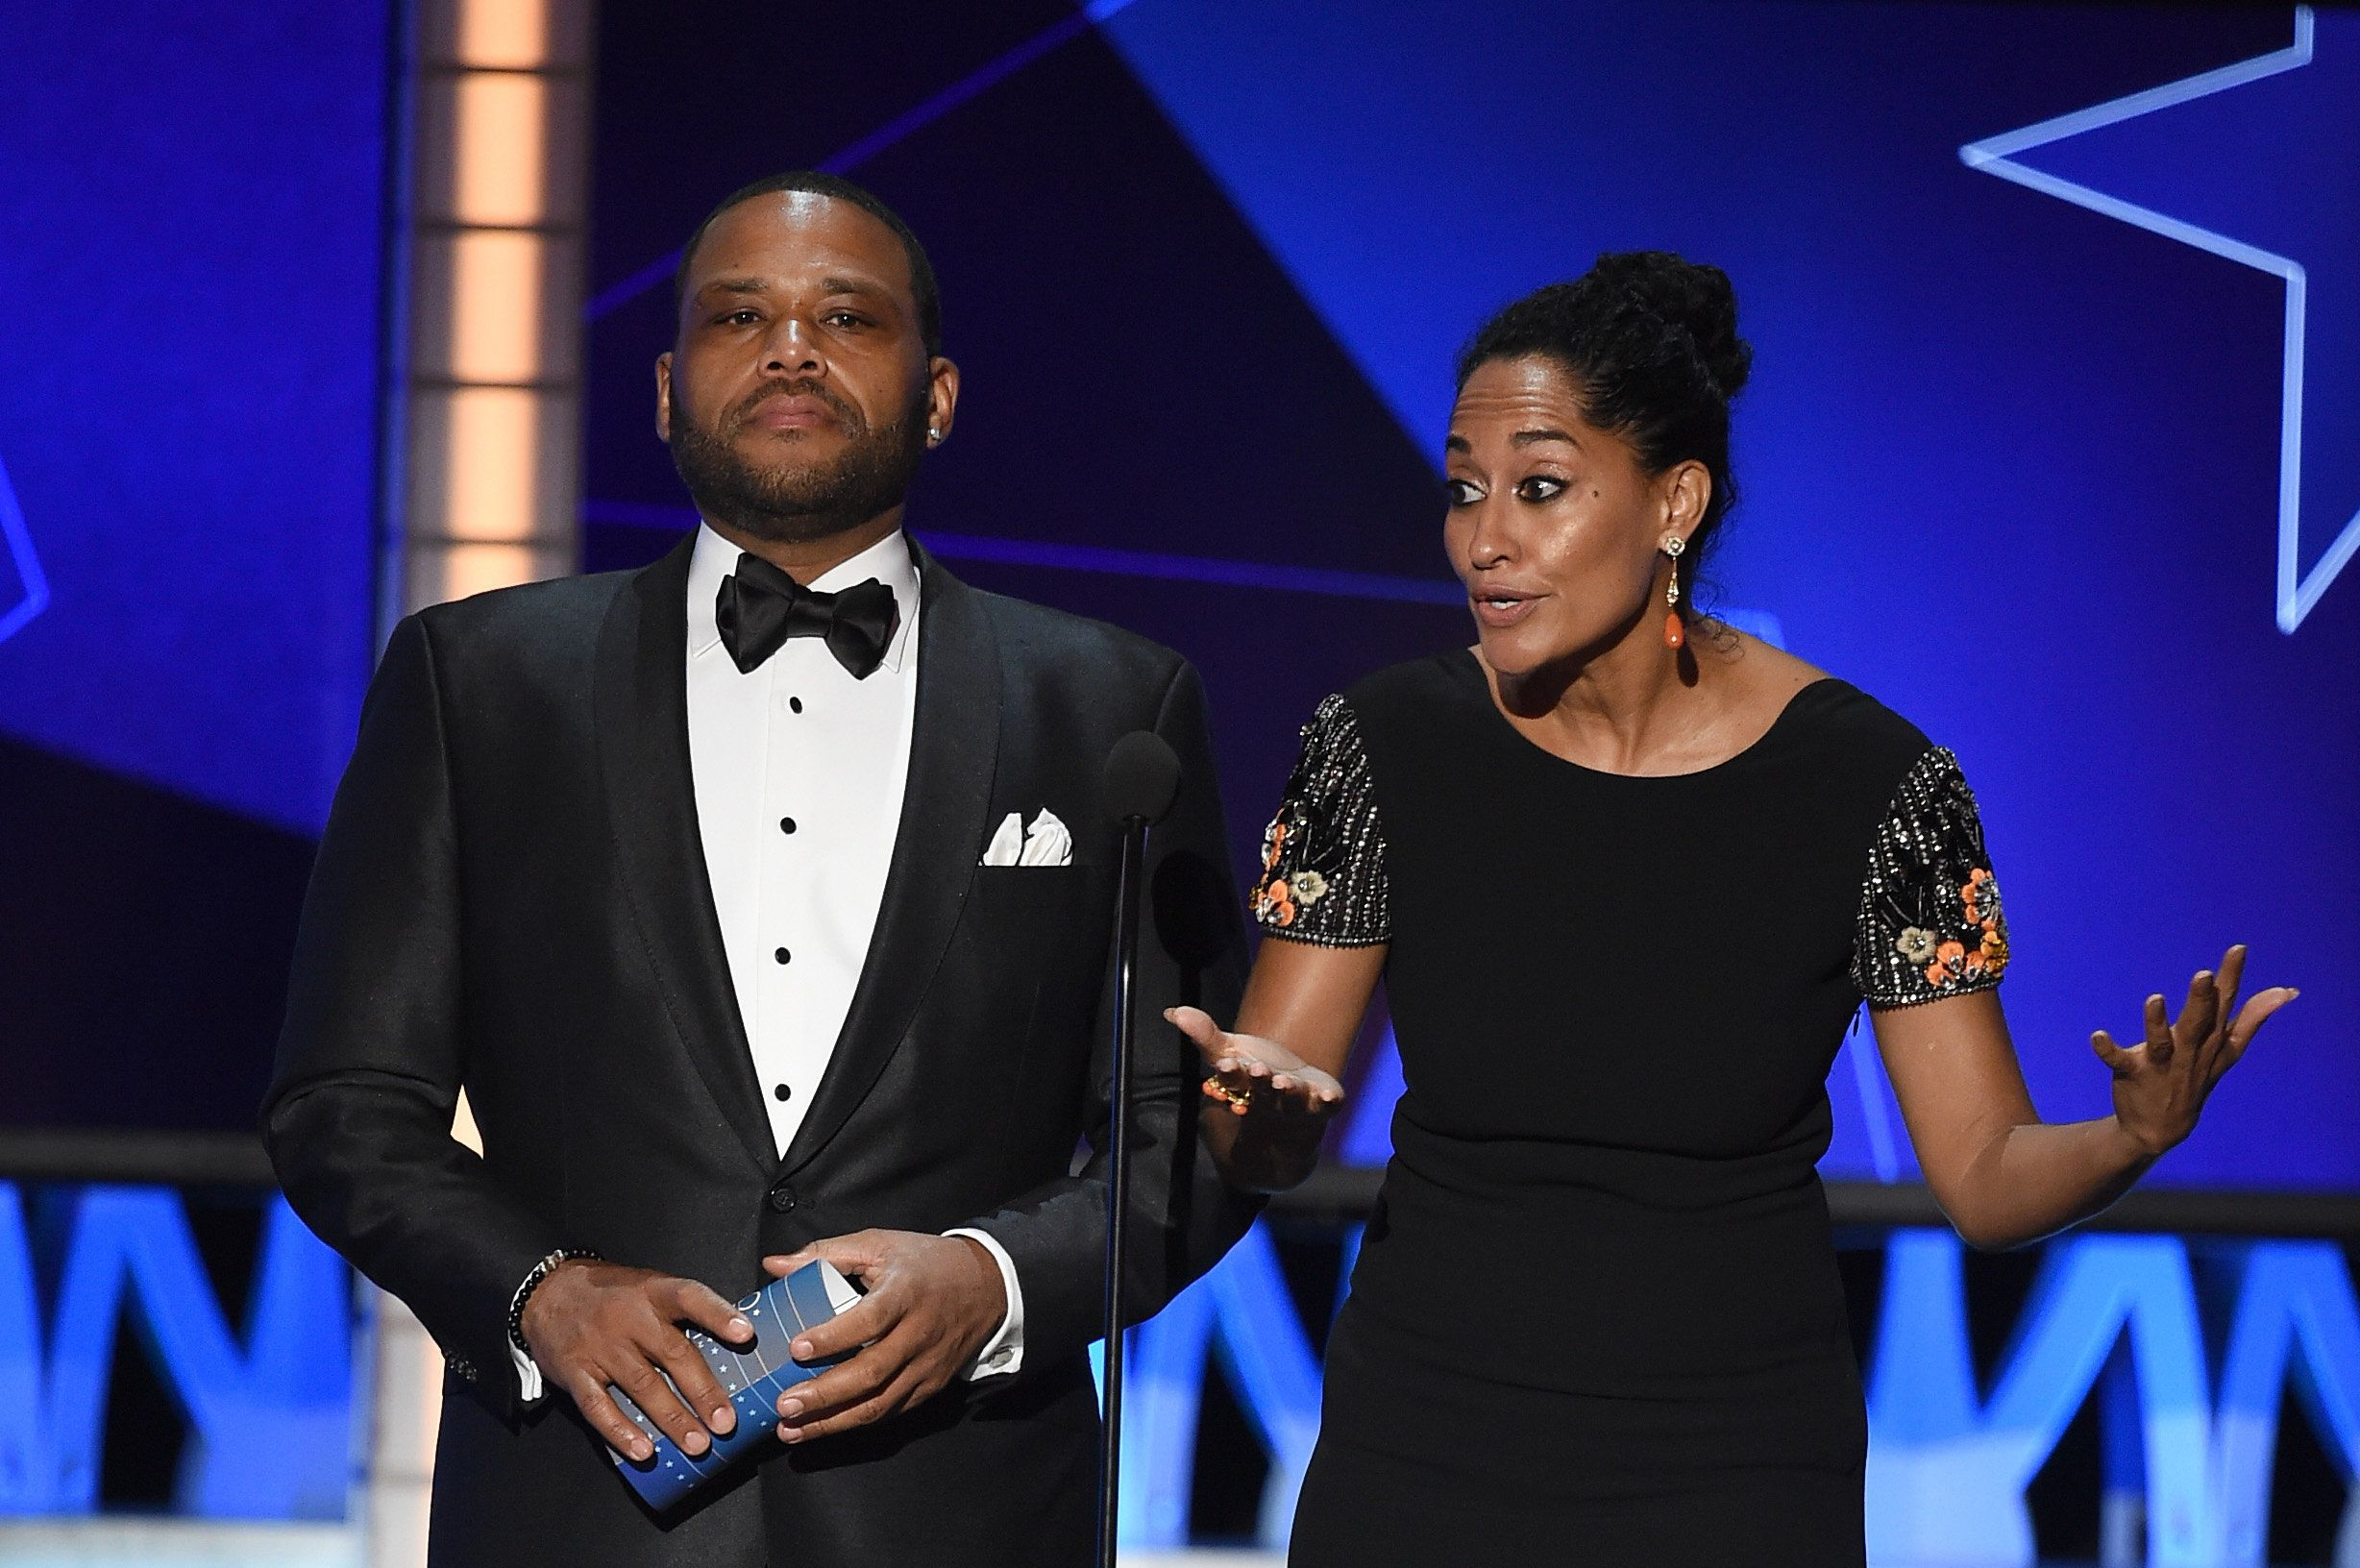 SANTA MONICA, CA - JANUARY 17:  Actors Anthony Anderson (L) and Tracee Ellis Ross speak onstage during the 21st Annual Critics' Choice Awards at Barker Hangar on January 17, 2016 in Santa Monica, California.  (Photo by Kevin Winter/Getty Images)